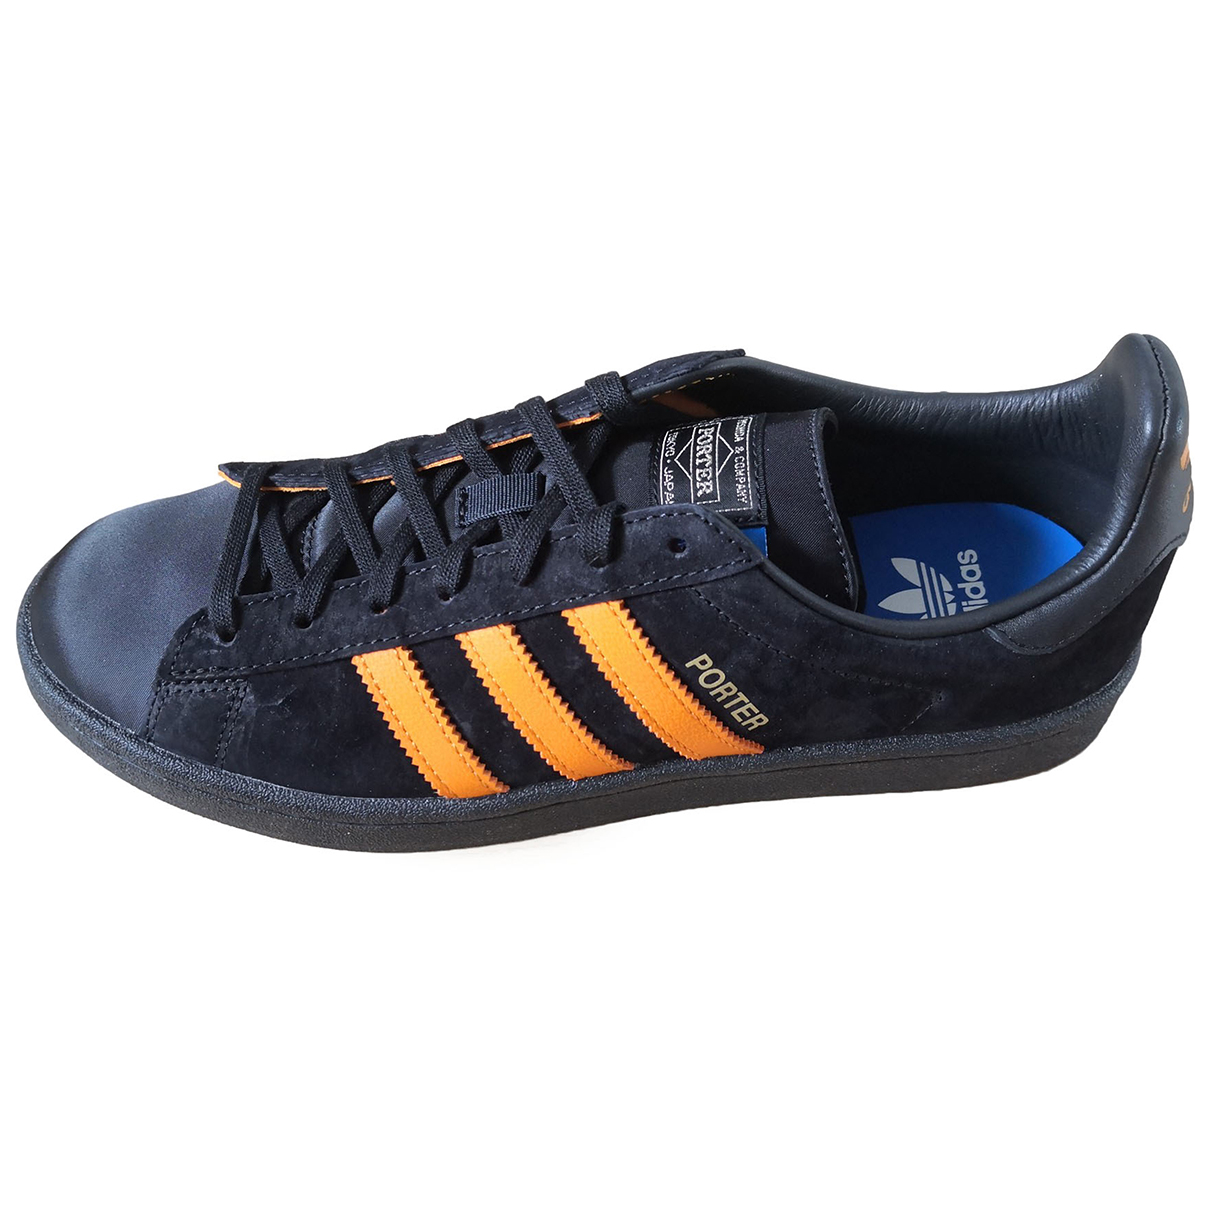 Adidas \N Black Leather Trainers for Men 8.5 UK